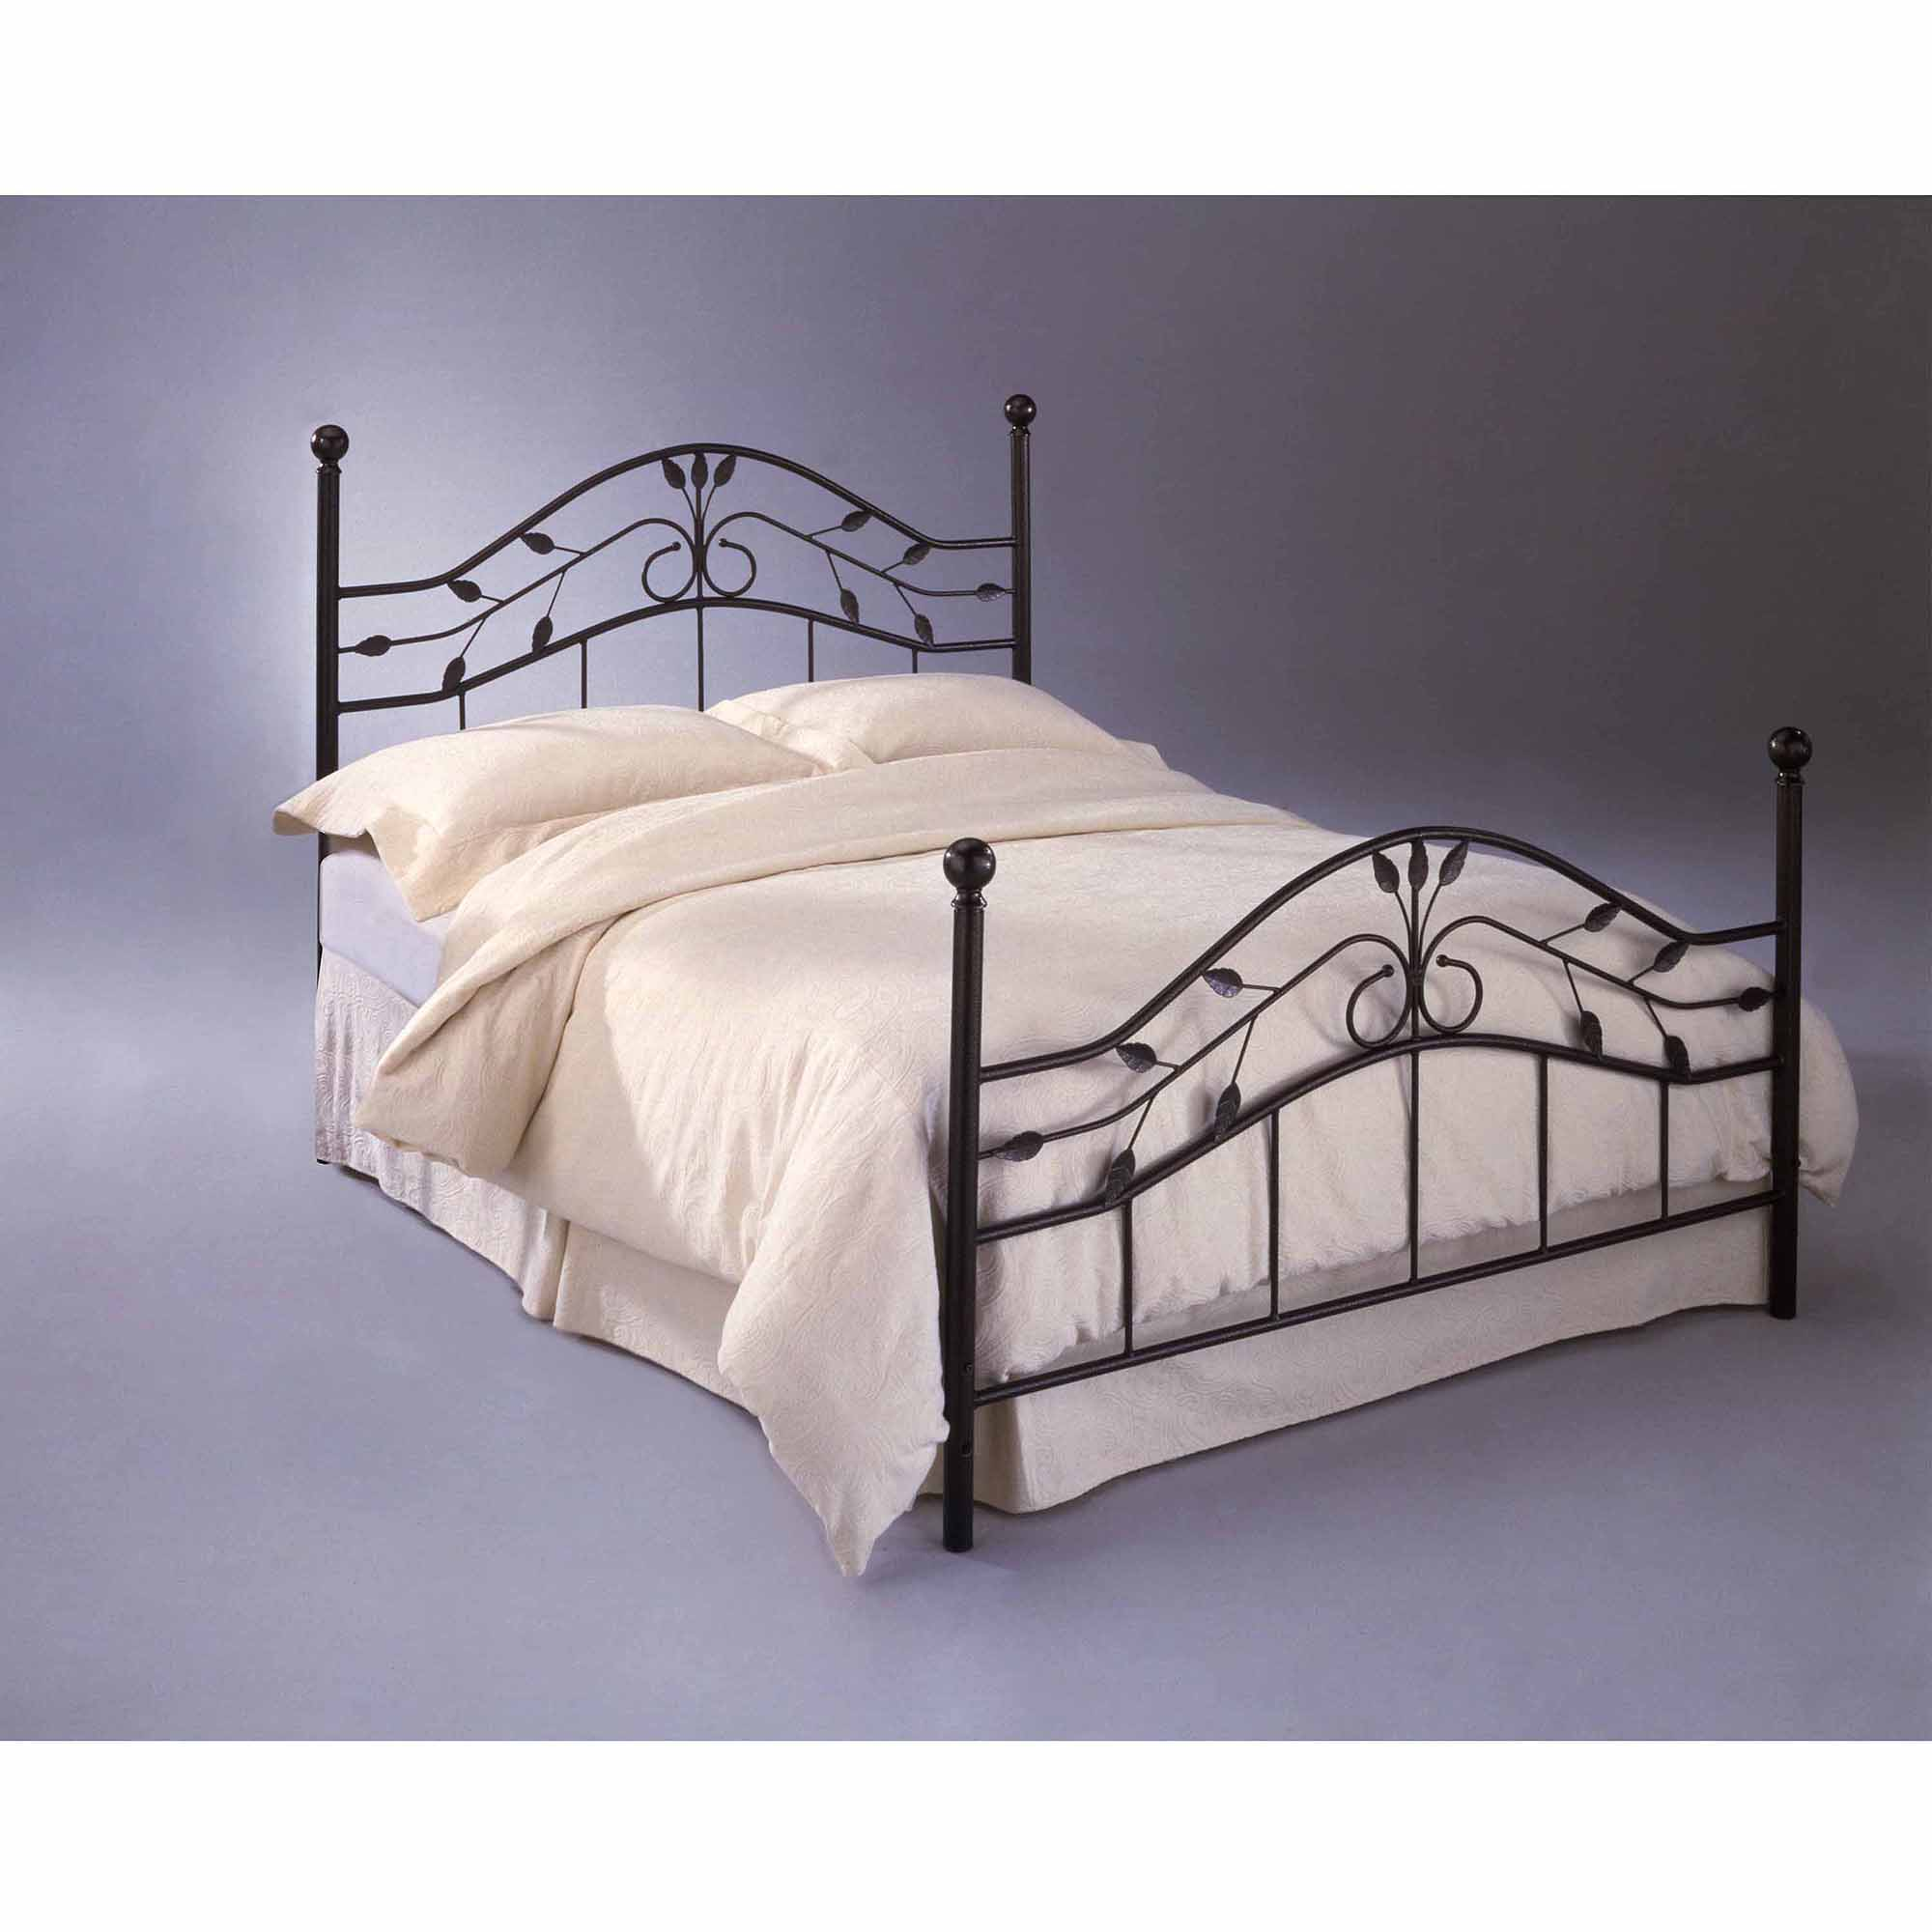 Leggett & Platt Fashion Bed Group Sycamore Duo Panel, Hammered Copper